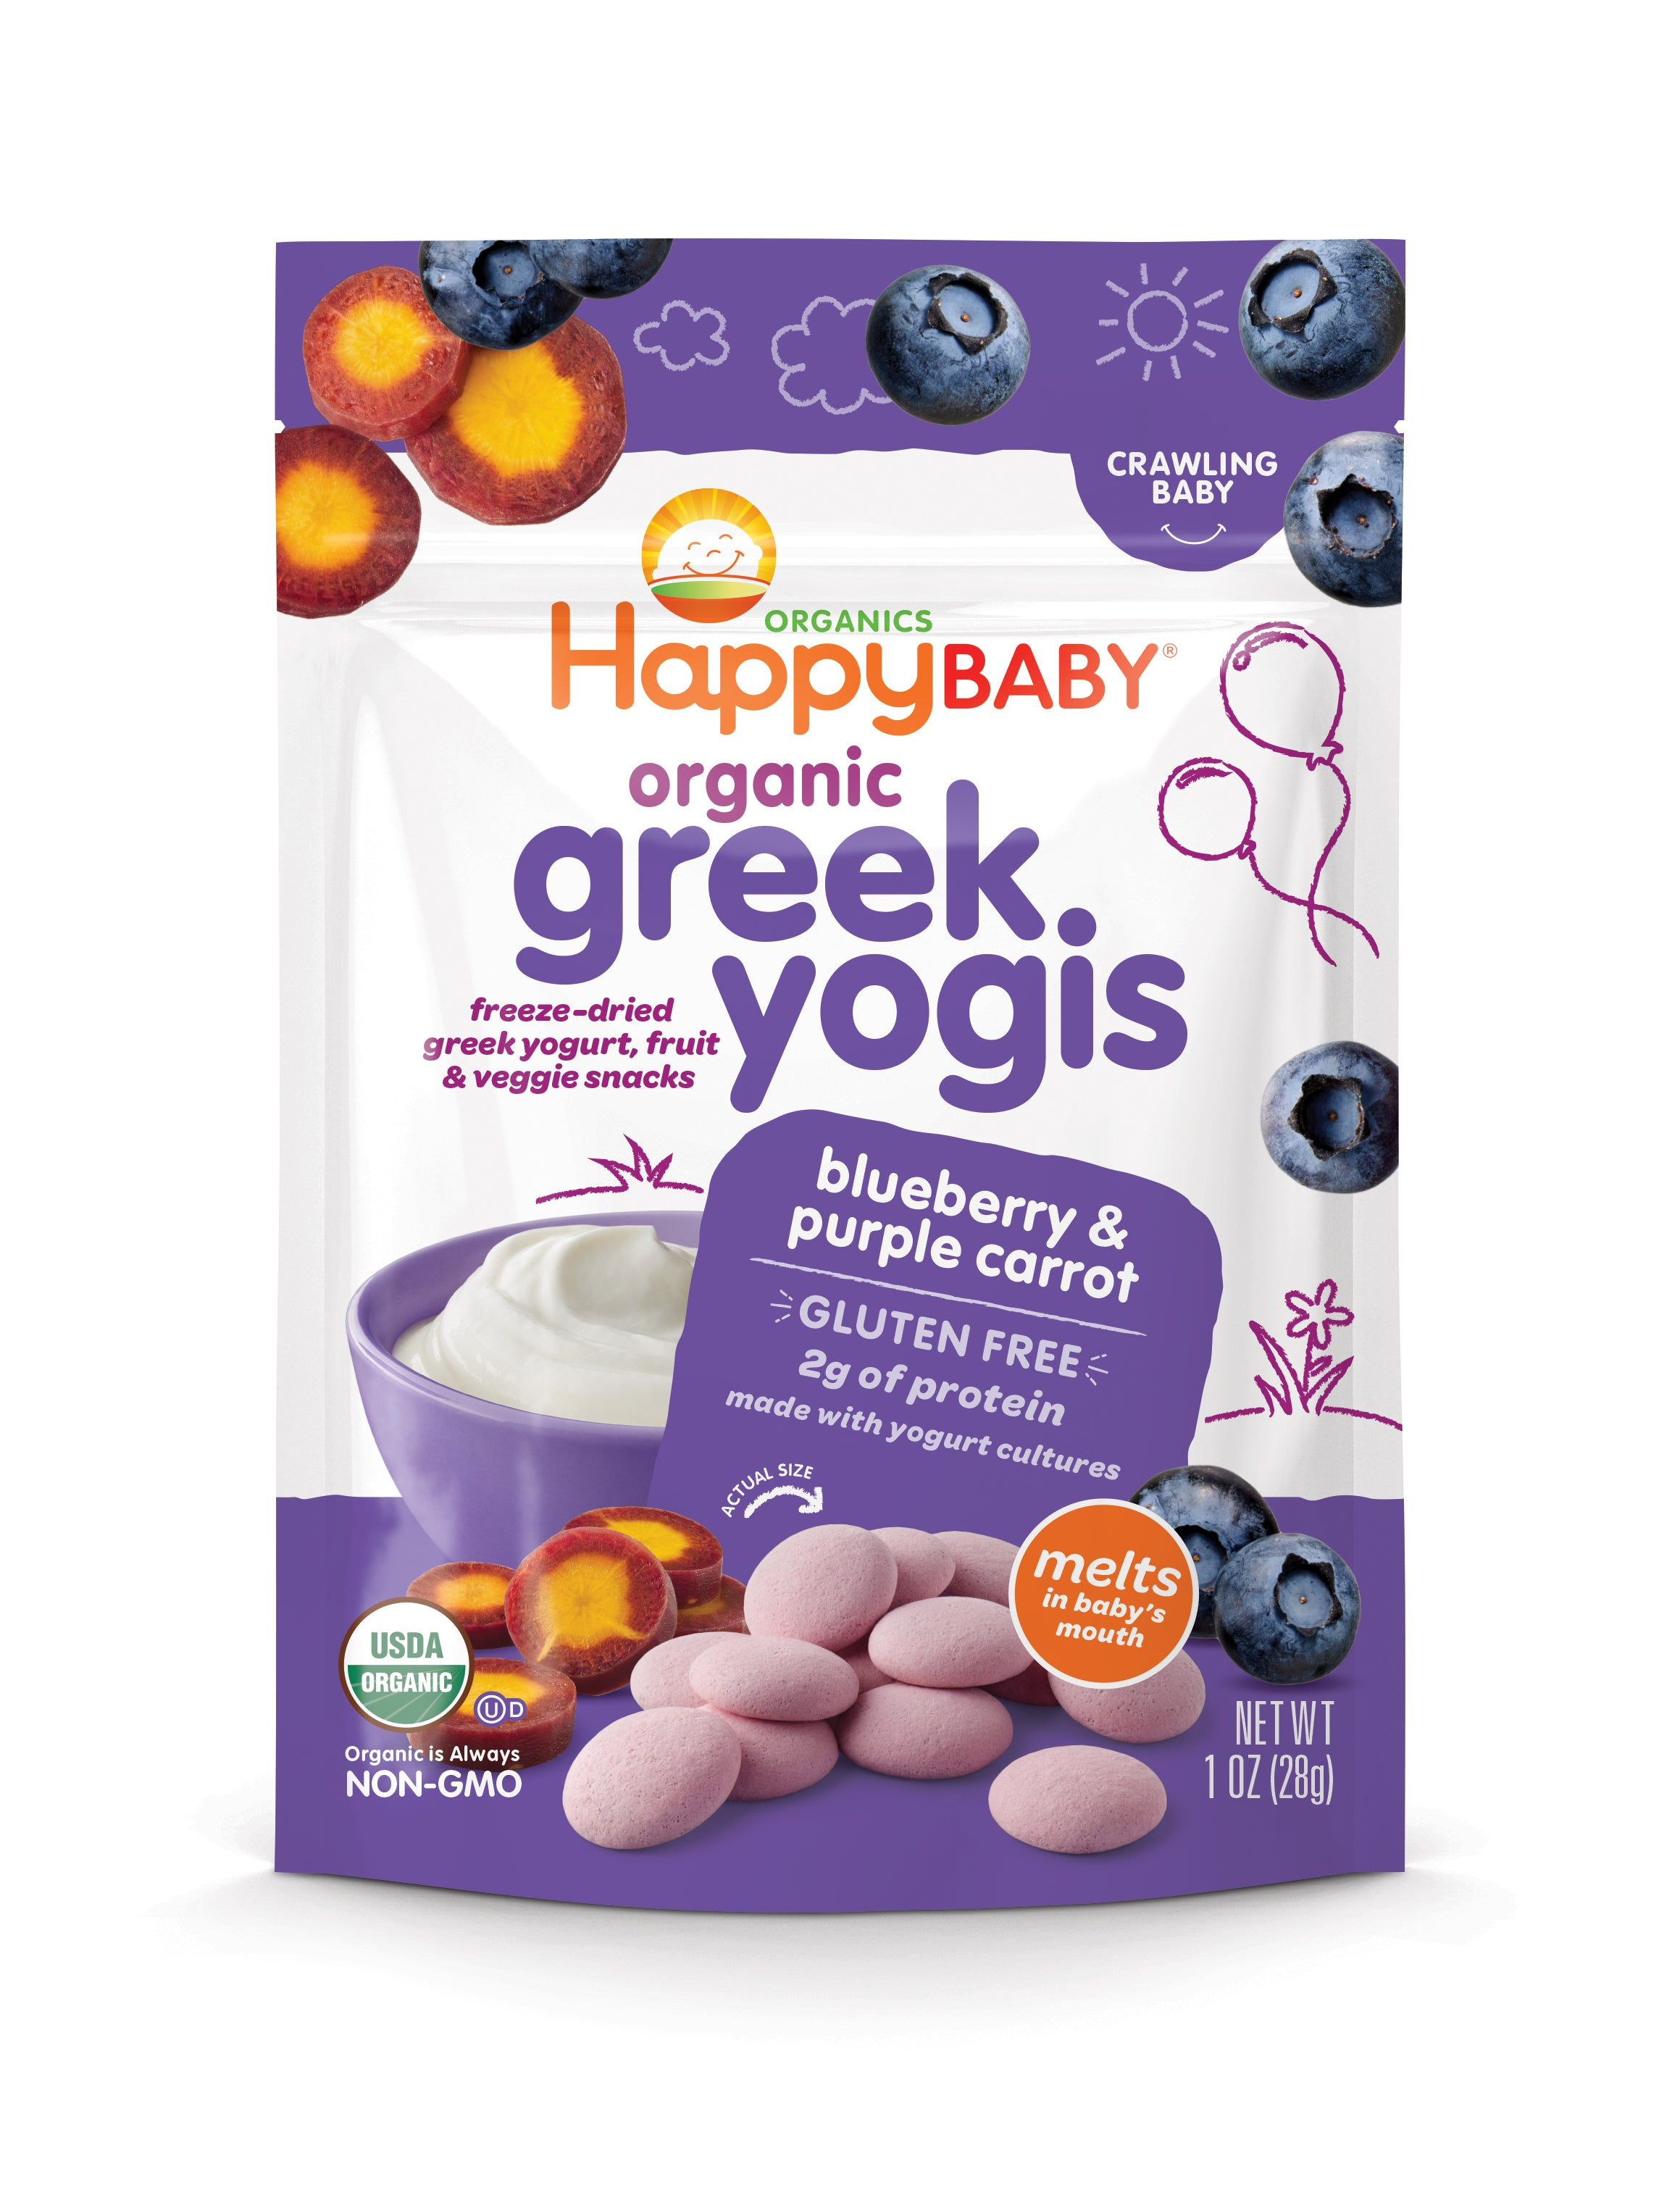 Happy Family Happy Baby Organic Greek Yogis - Blueberry Purple Carrot, 28 g.